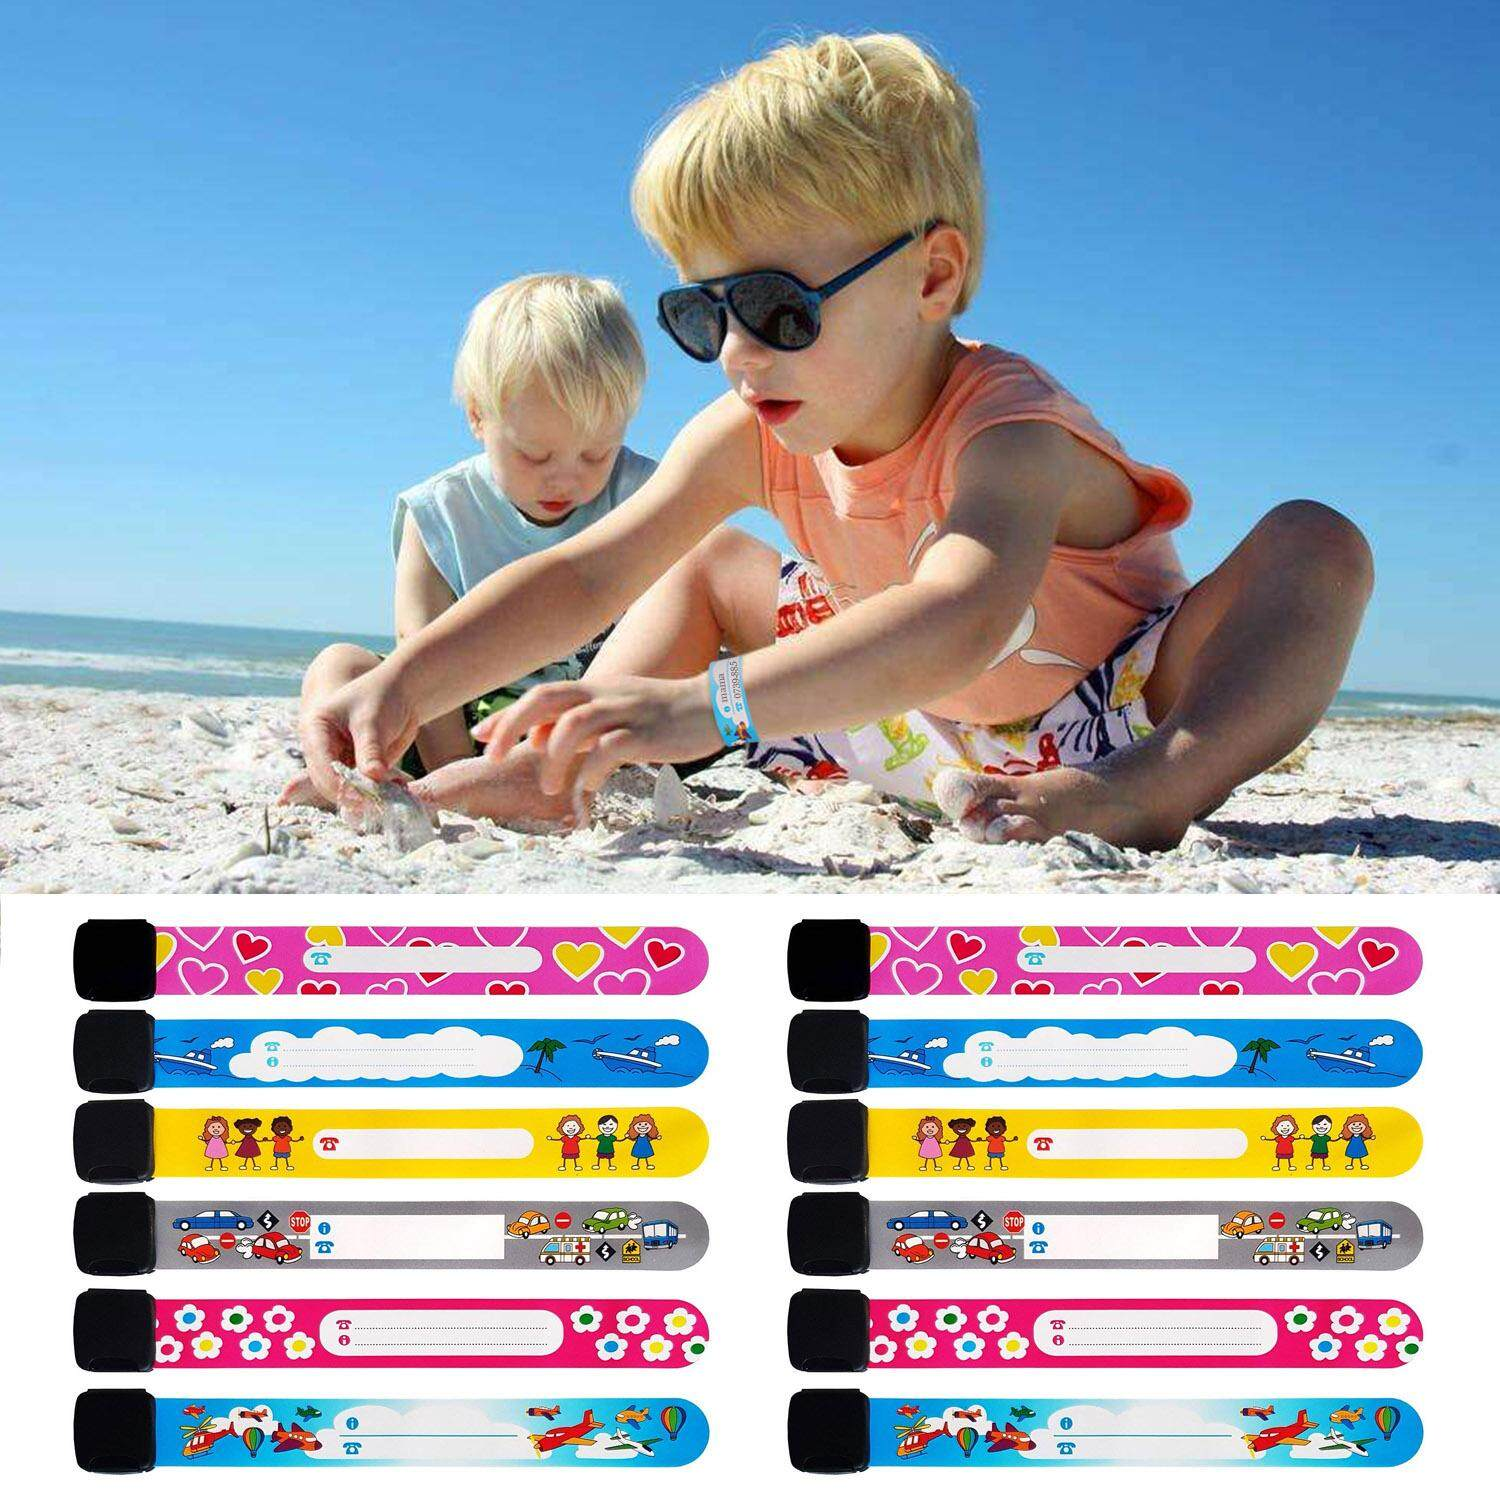 12pcs Colorful Adjustable Reusable Waterproof Child Anti Lost Wristband ID Emergency Contact Link Safety Bracelet with Buckle for Kids Outdoor Safety Random Style image